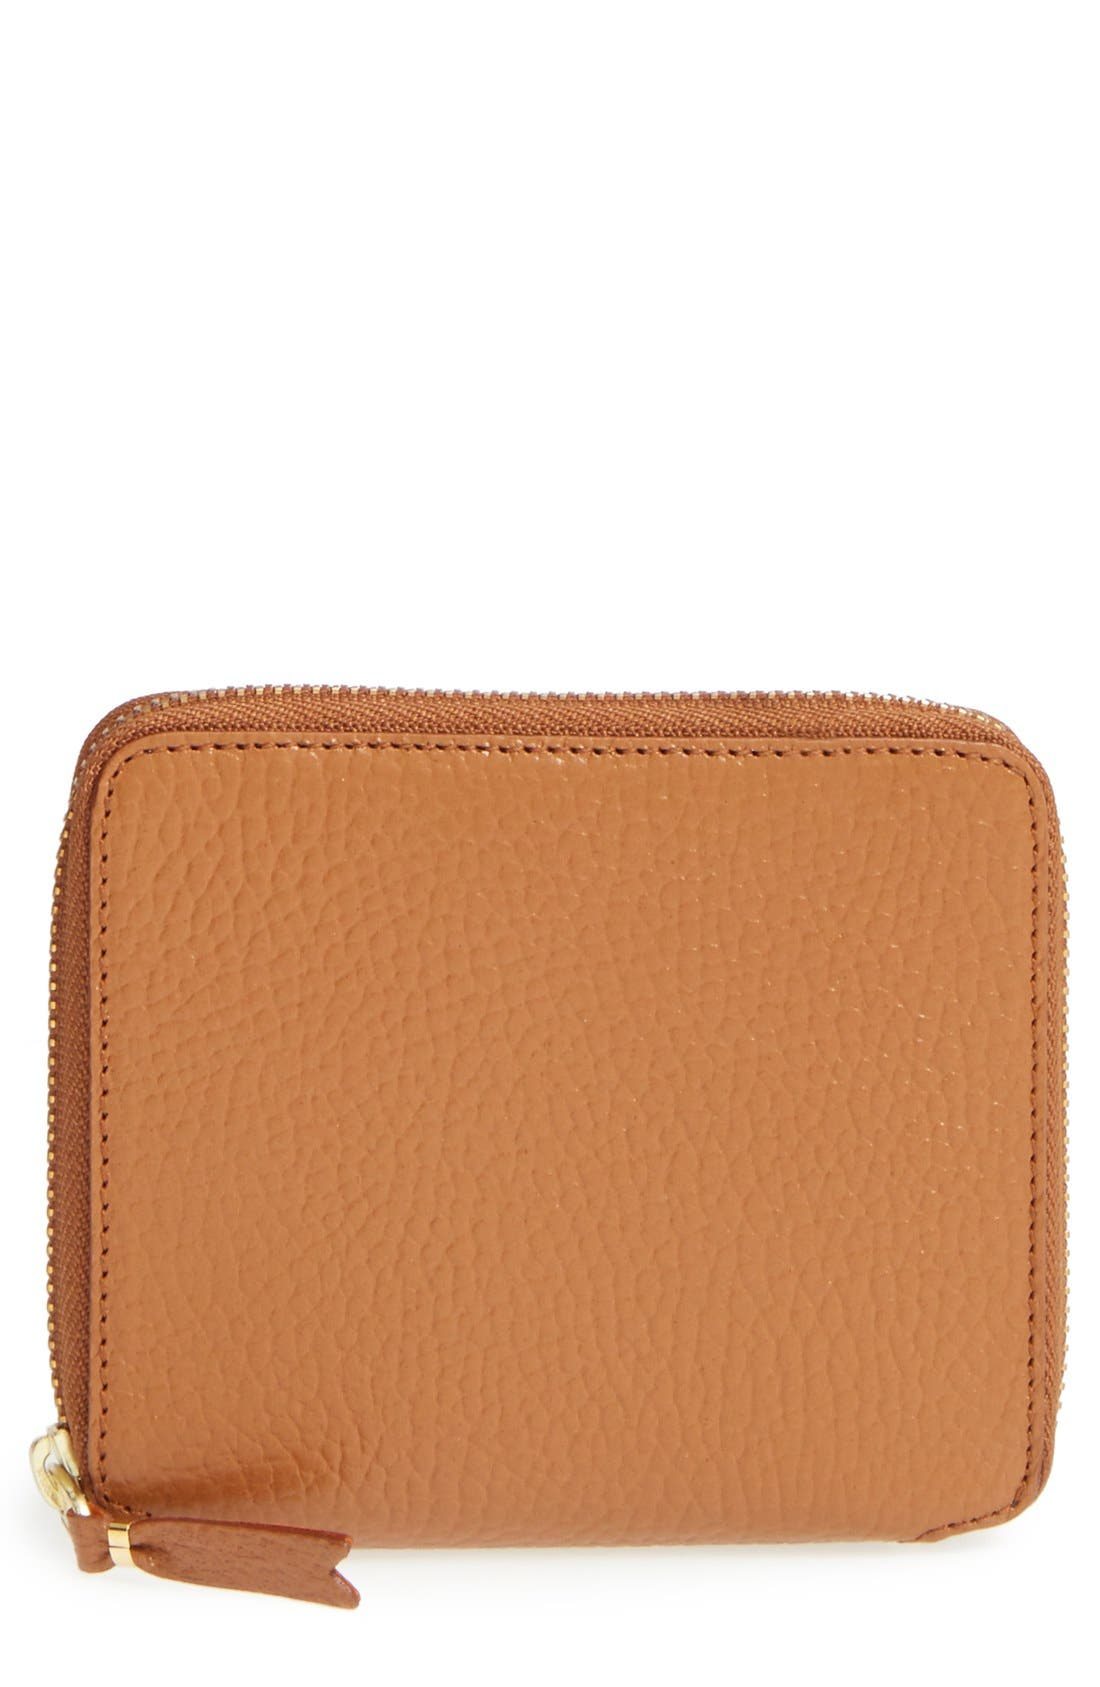 Alternate Image 1 Selected - Comme des Garçons Leather Wallet